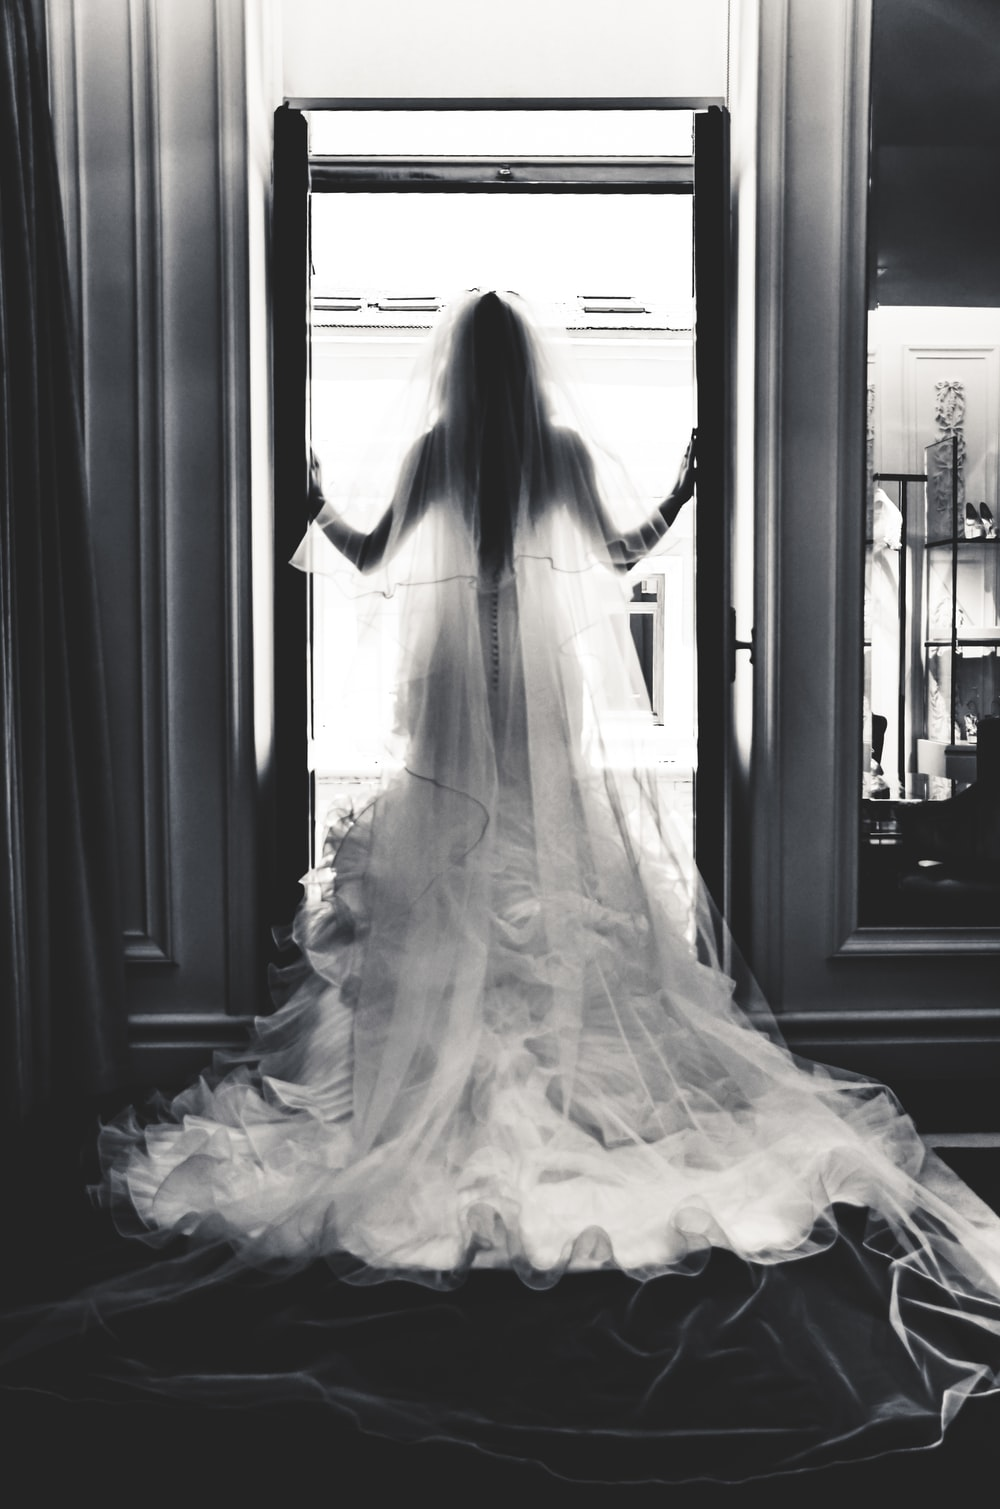 grayscale photography of woman wearing wedding gown standing near open window